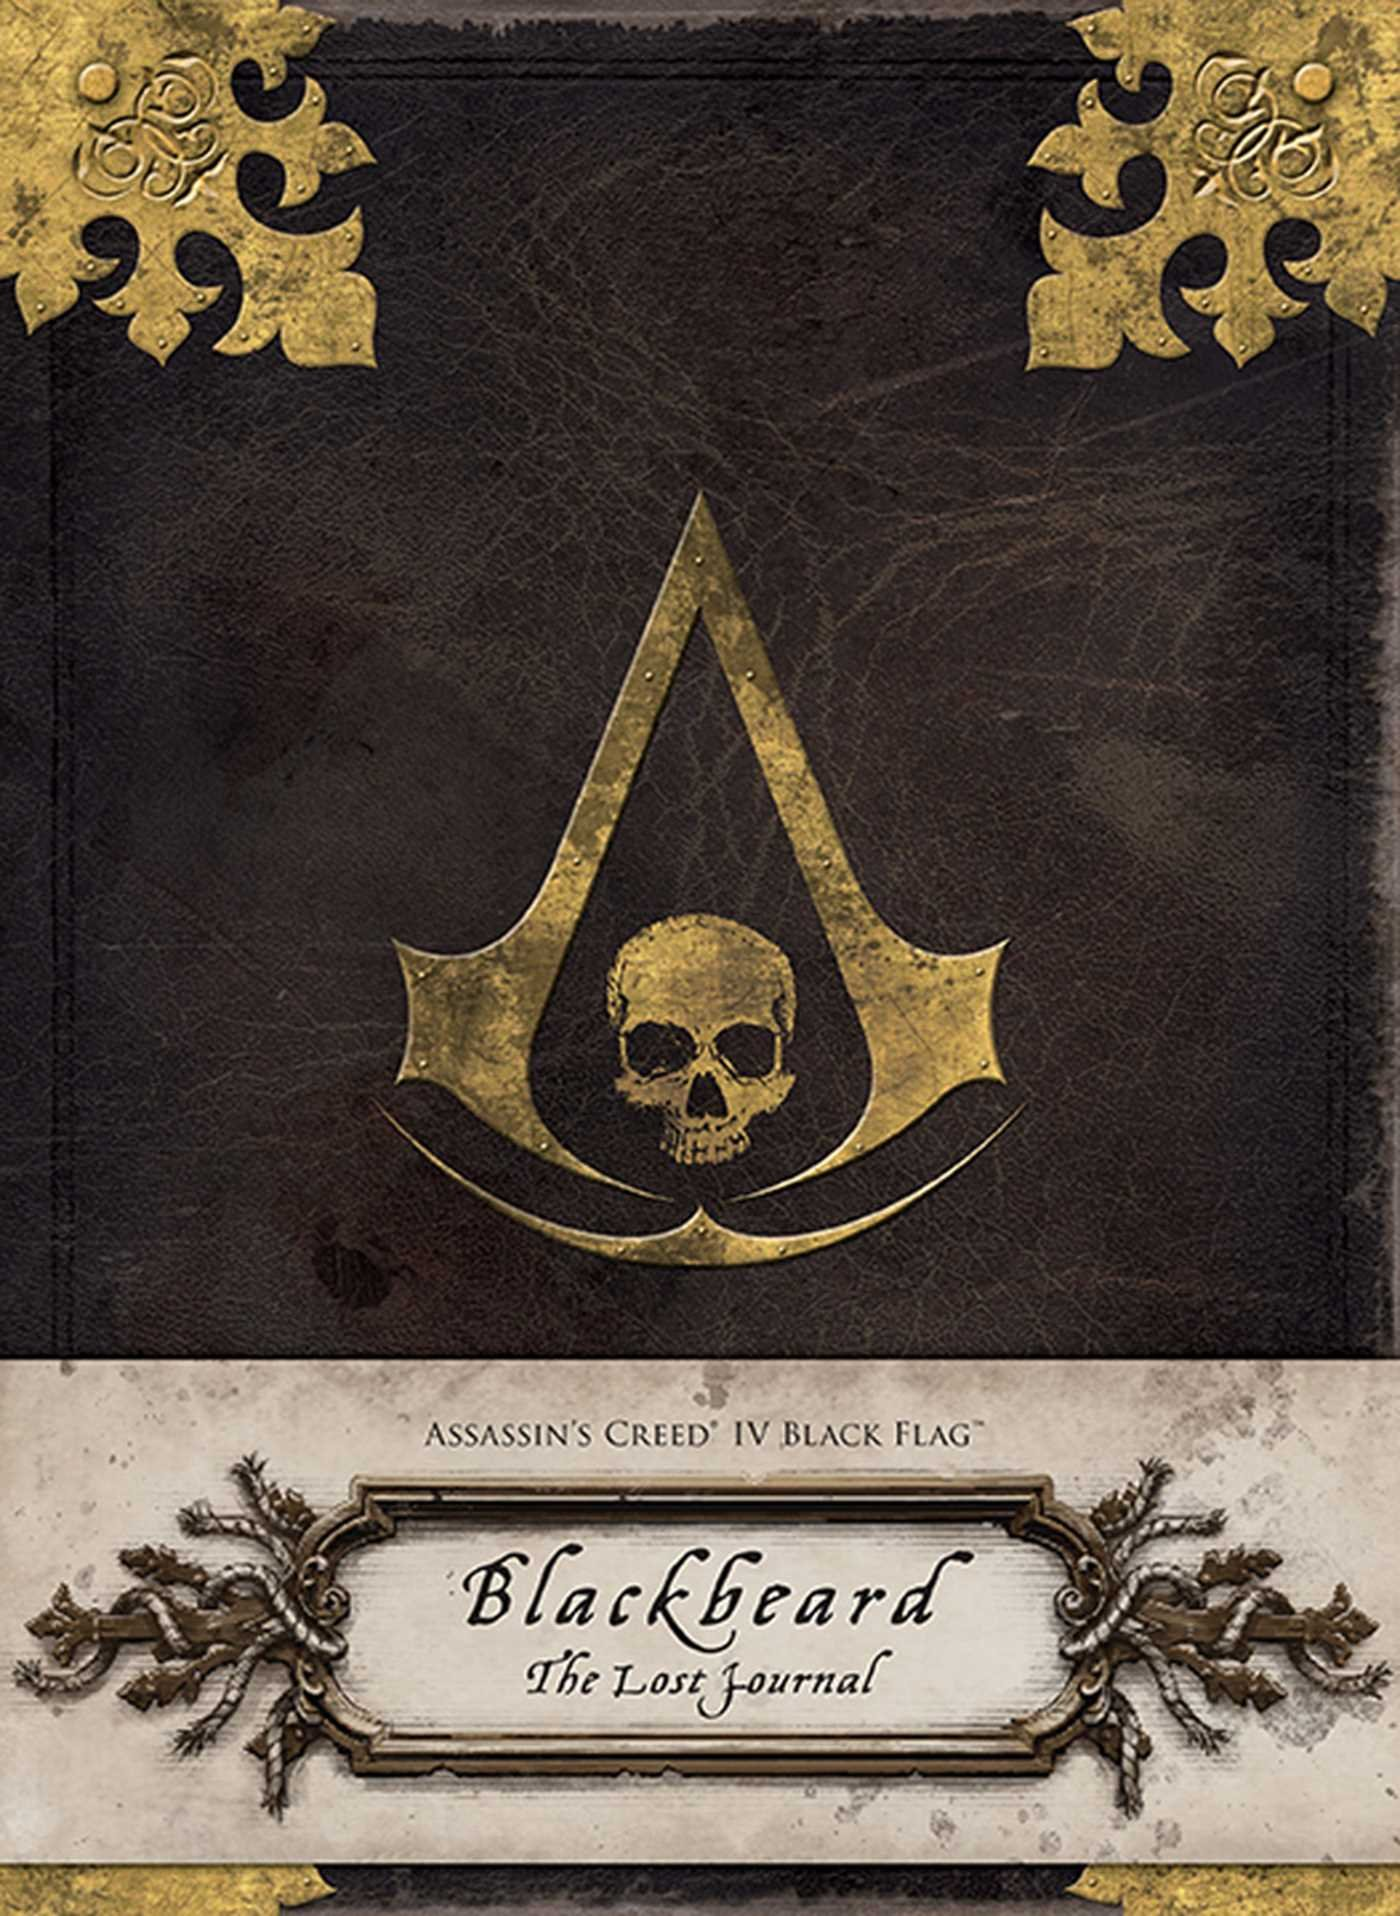 Assassin's Creed IV Black Flag: Blackbeard – The Lost Journal